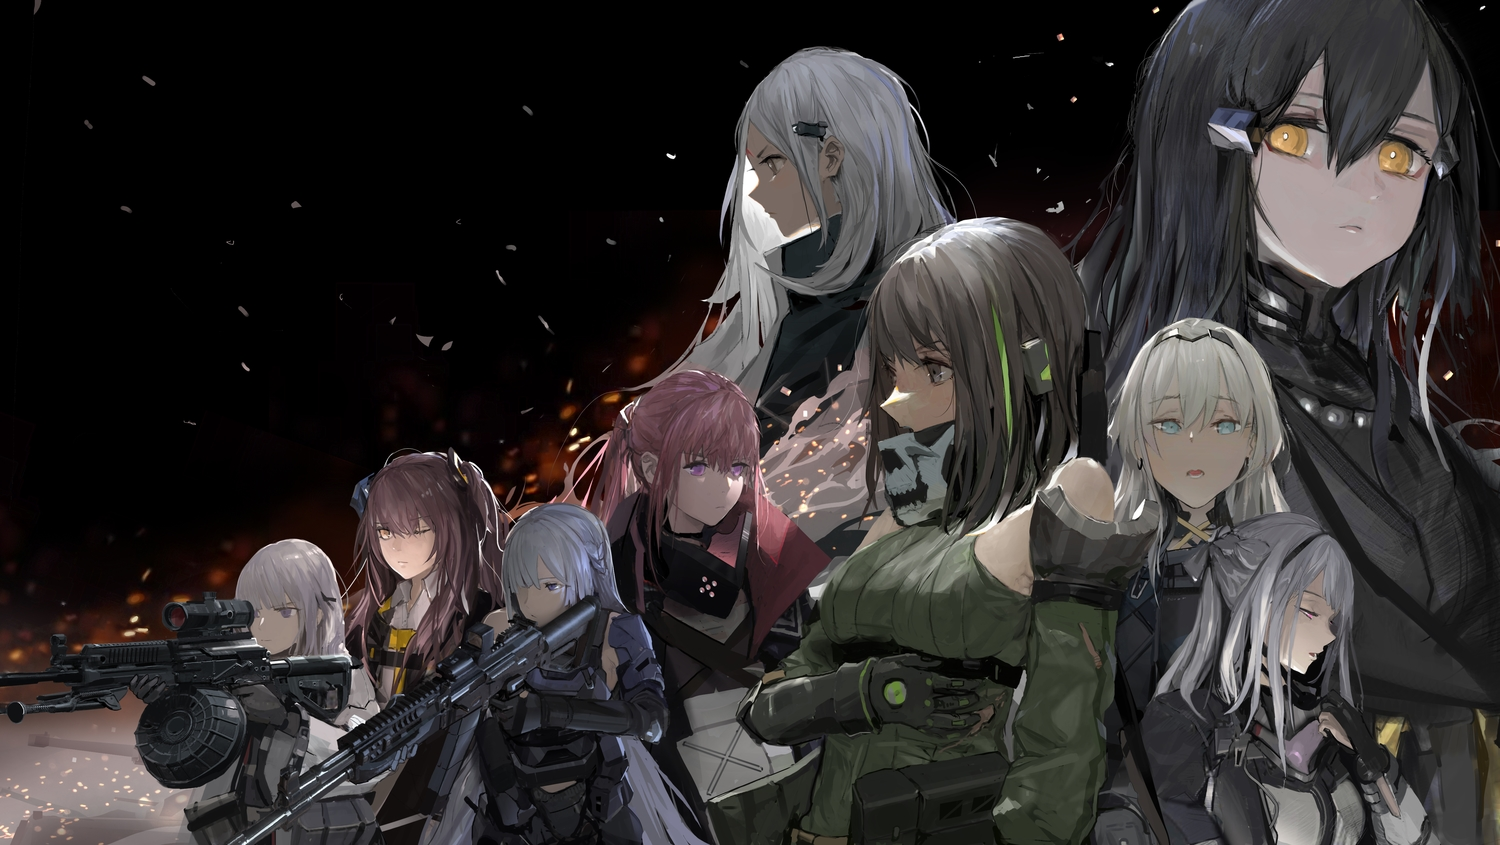 ak12_(girls_frontline) ak15_(girls_frontline) an94_(girls_frontline) anthropomorphism elisa_(girls_frontline) girls_frontline group gun m4a1_(girls_frontline) nyto_black_(girls_frontline) paindude rpk-16_(girls_frontline) st_ar-15_(girls_frontline) ump-45_(girls_frontline) weapon